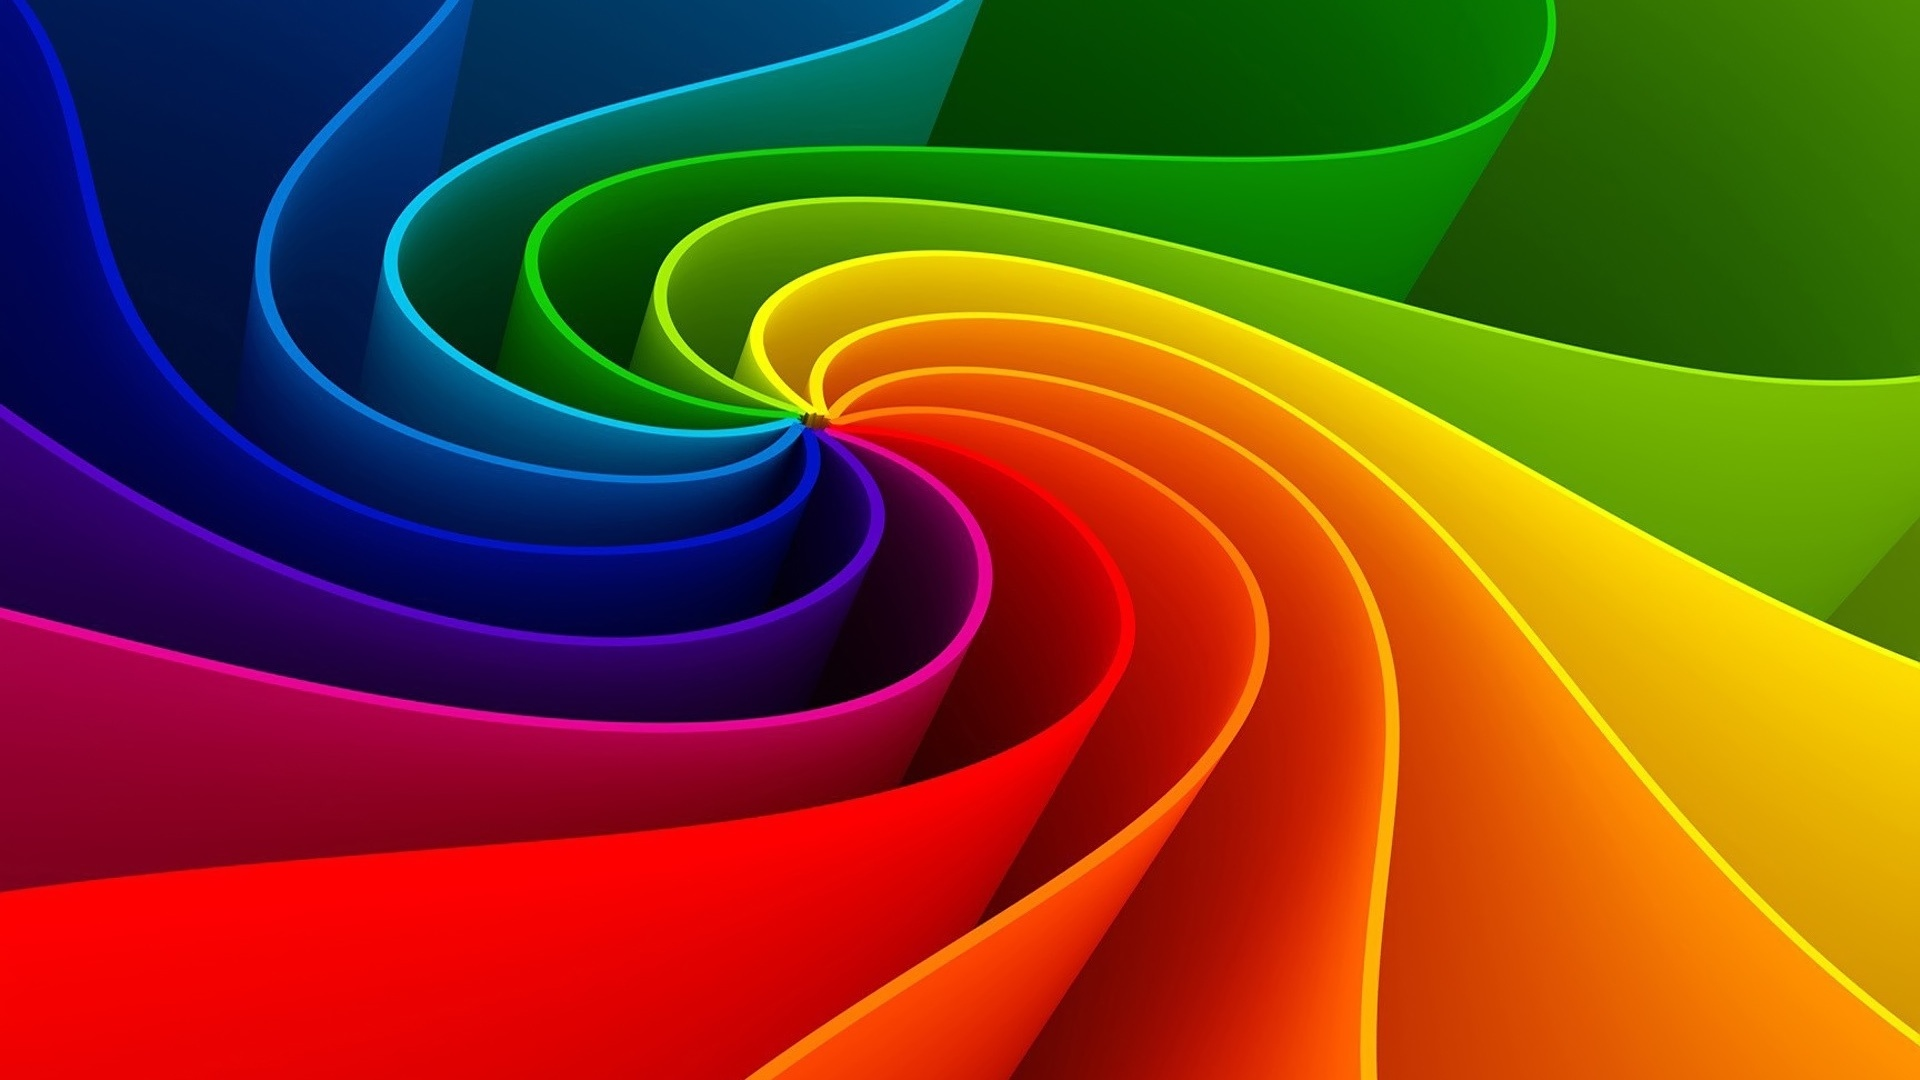 Amazing Colorful Abstract Rainbow 3d Hd S Wallpaper 3d Hd 1920x1080 Download Hd Wallpaper Wallpapertip